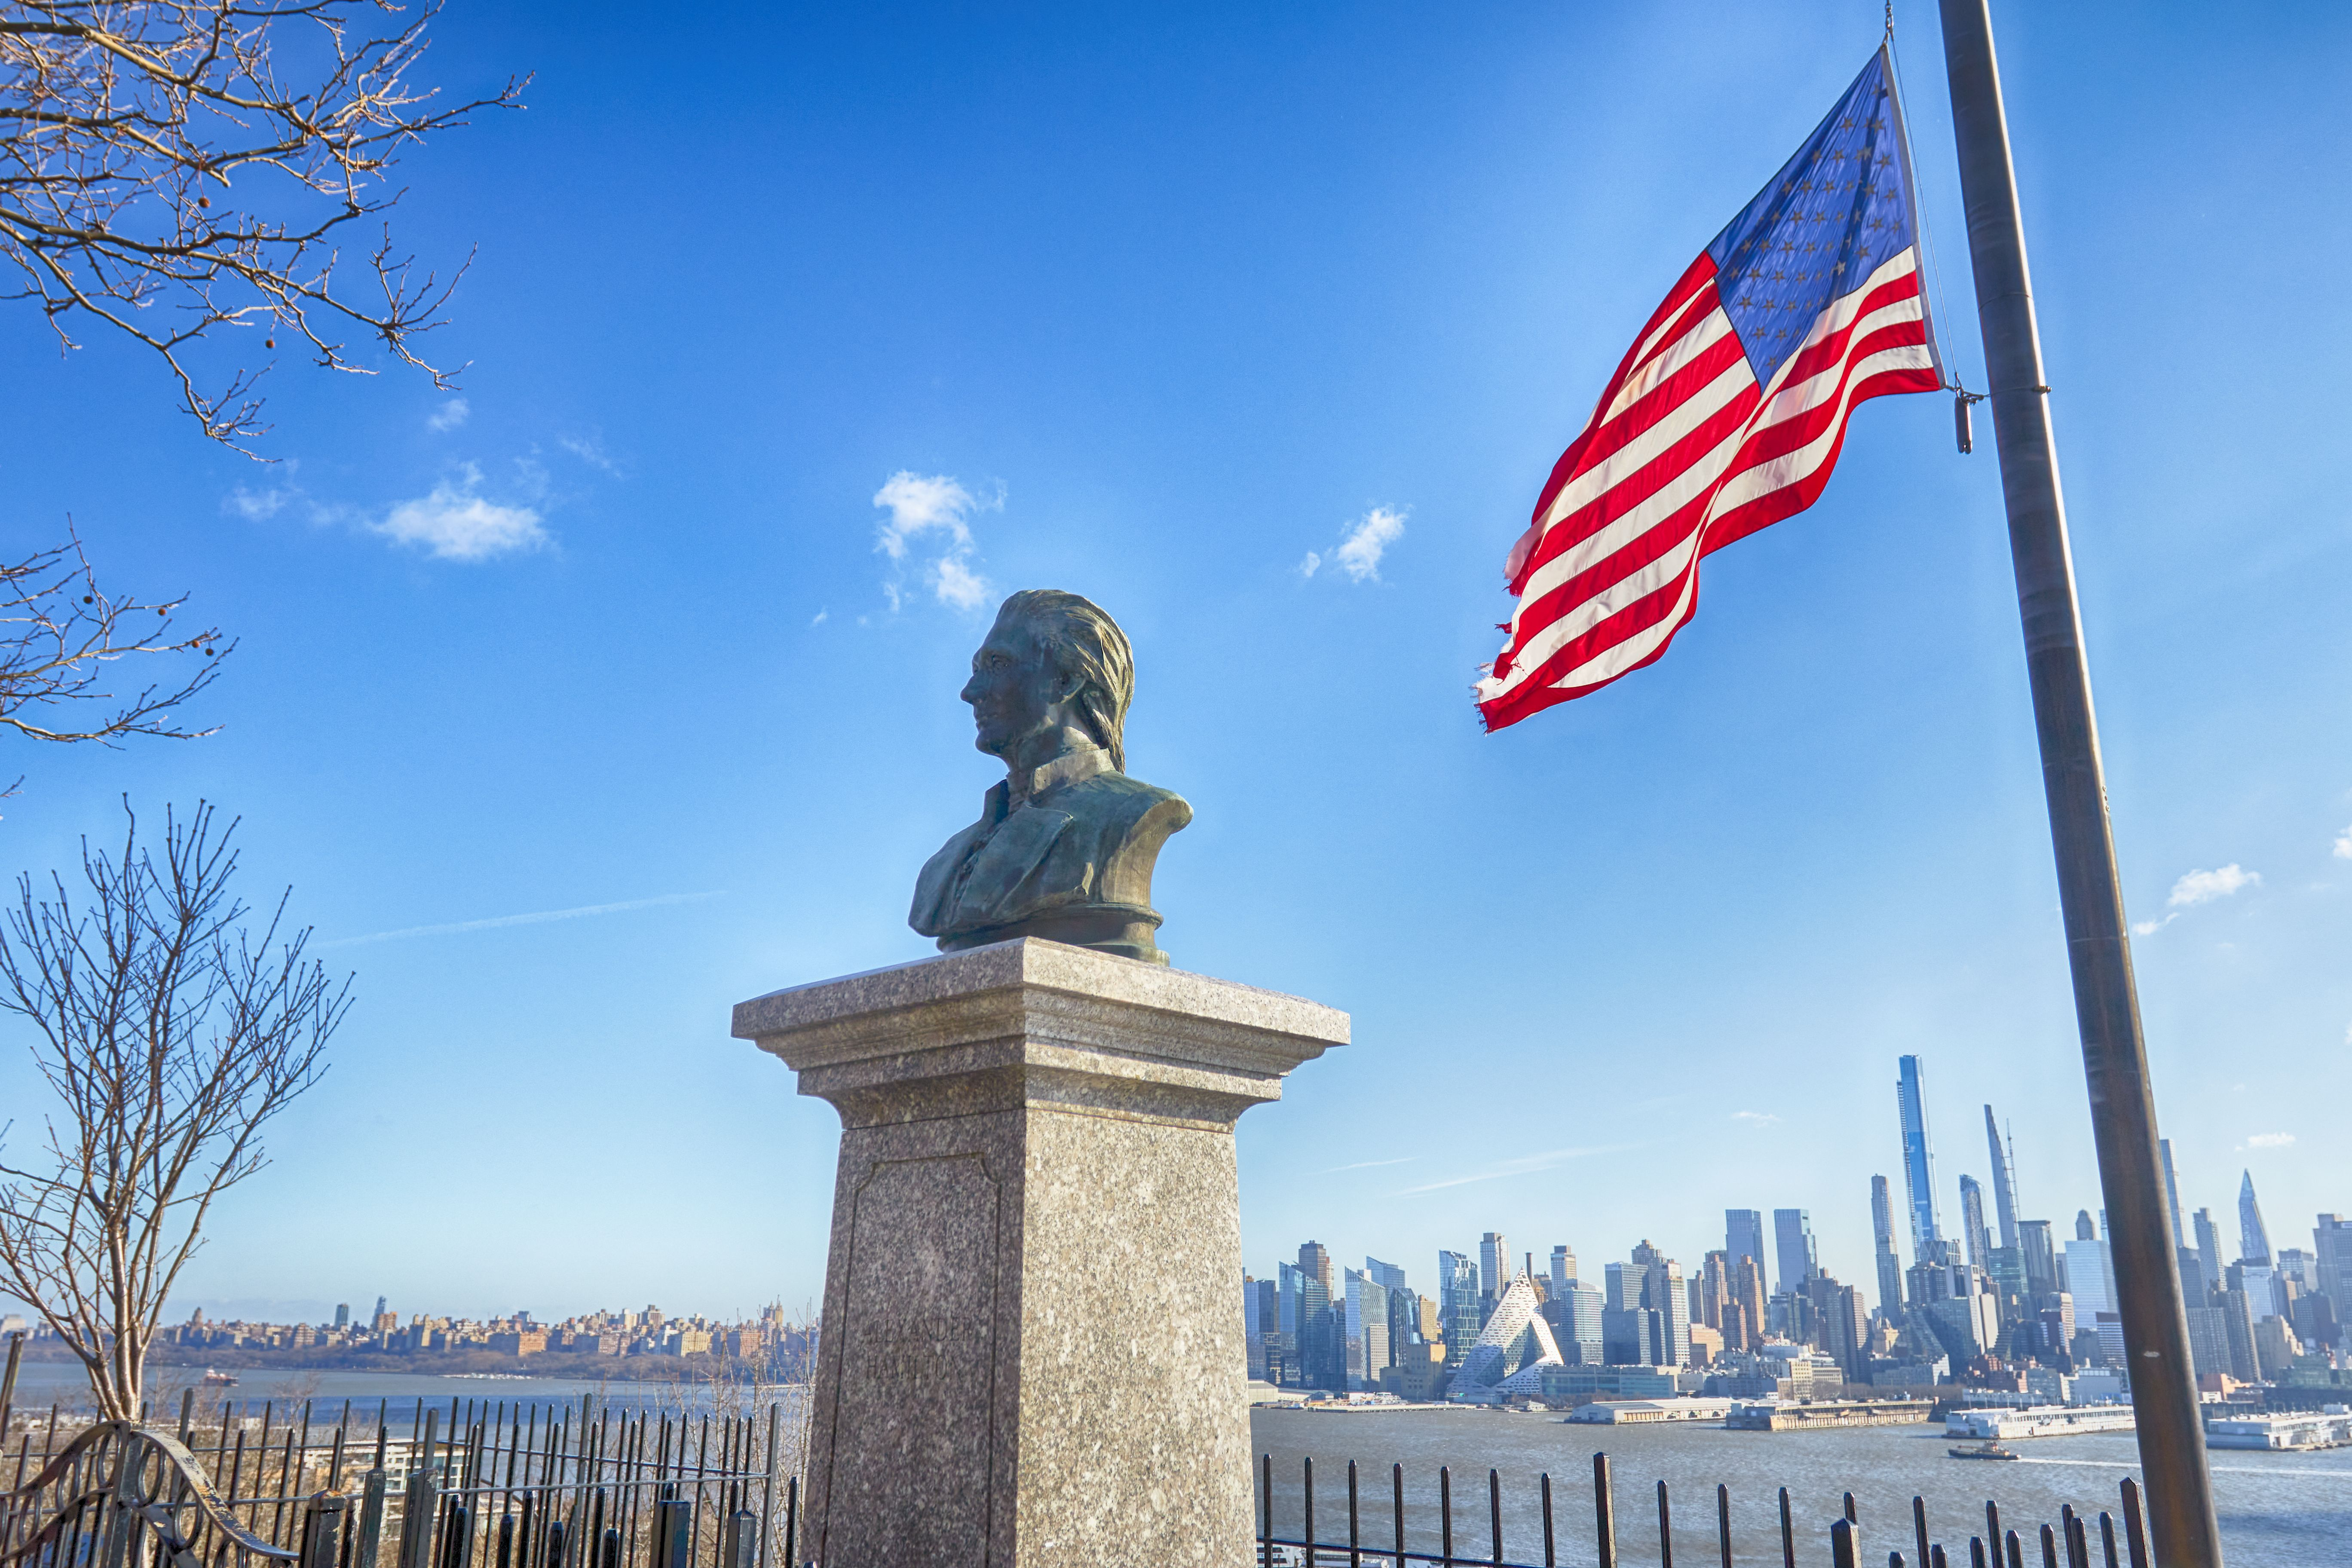 Bust of Alexander Hamilton on plinth, with an American flag at half-staff beside it. Manhattan is visible in the distance.